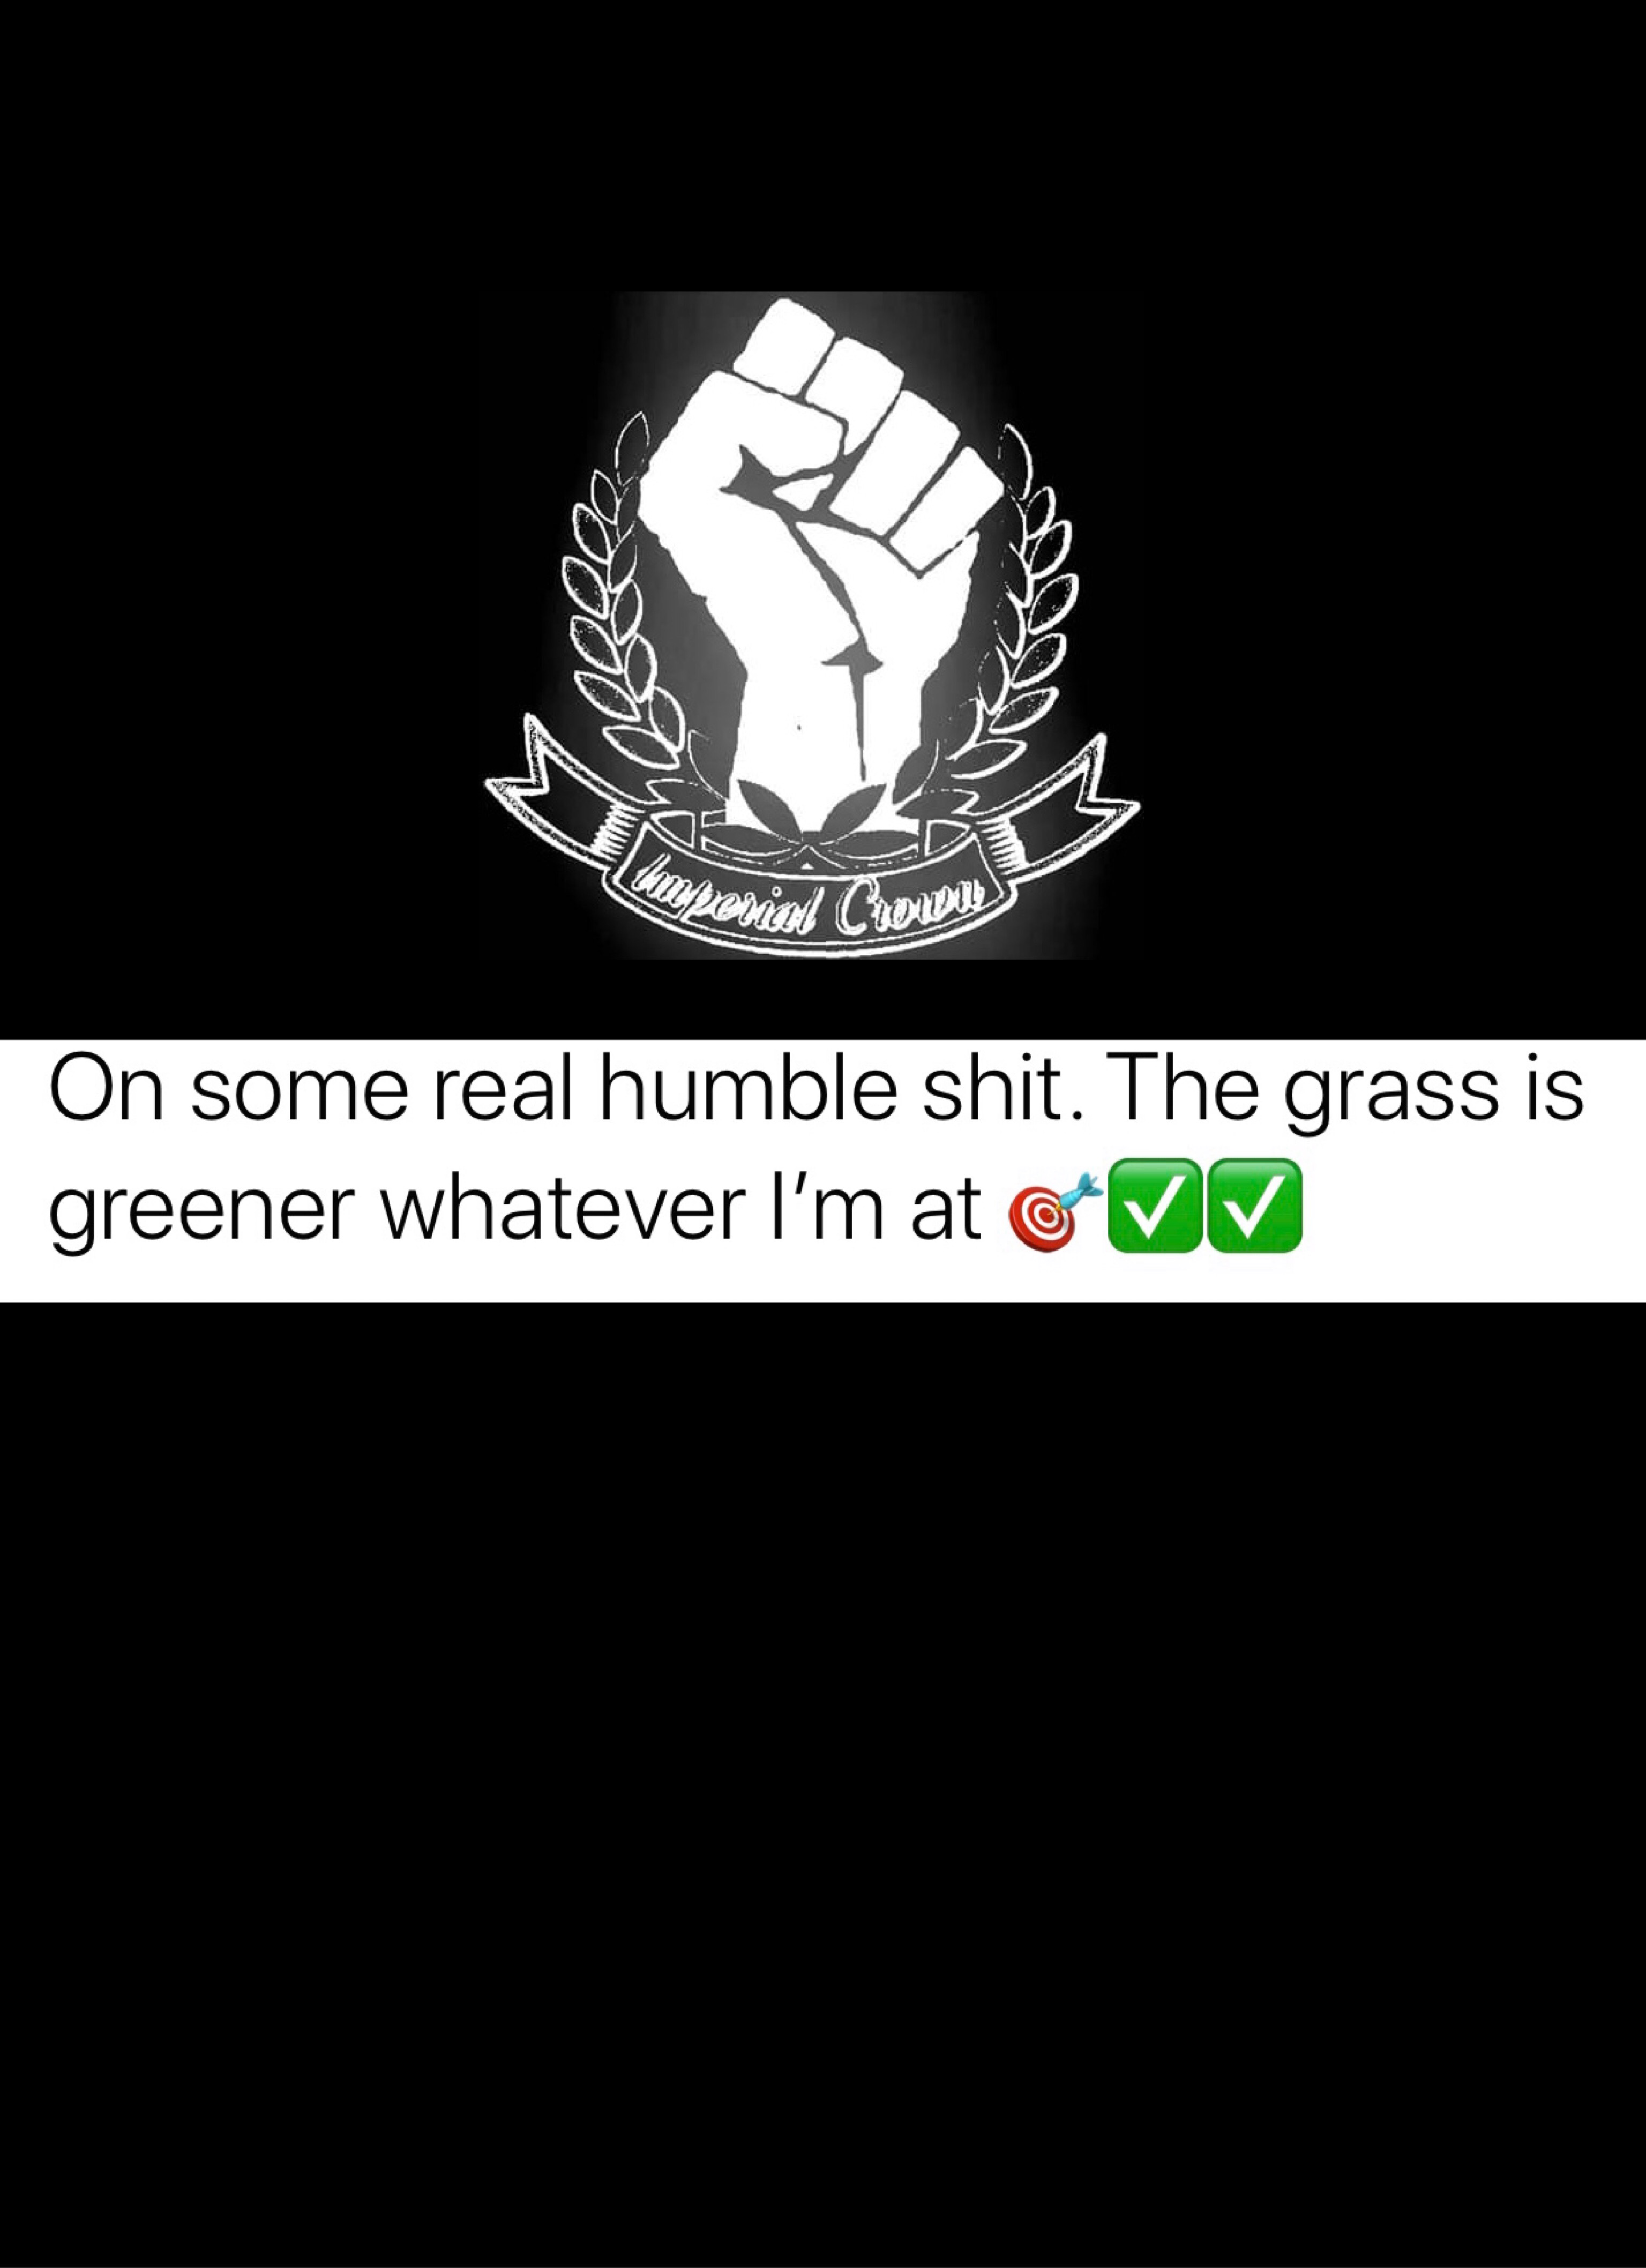 On some real humble shit the grass is greener whatever I'm at